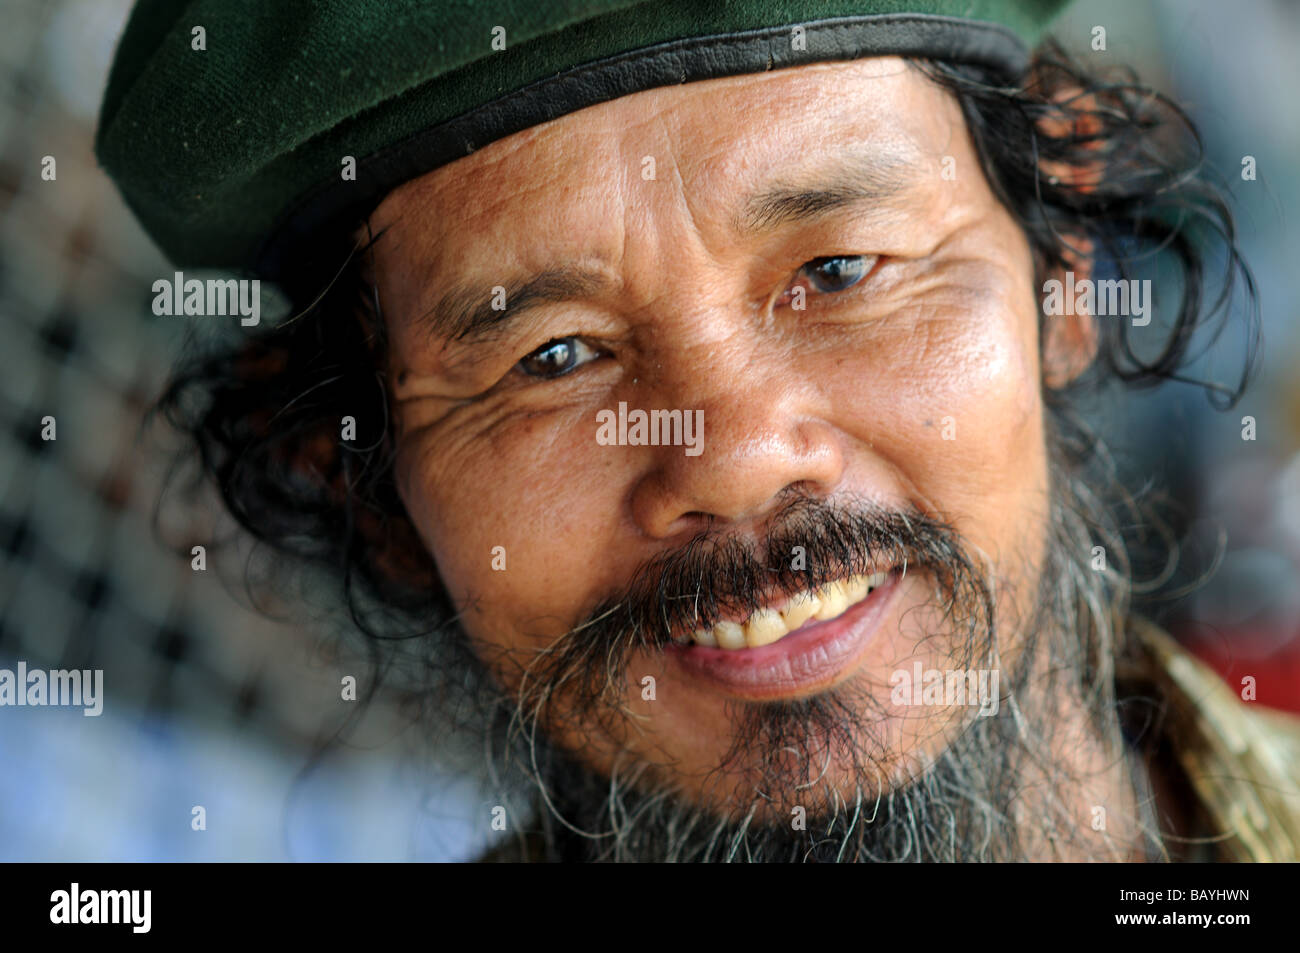 Bearded Thai Man High Resolution Stock Photography and Images - Alamy